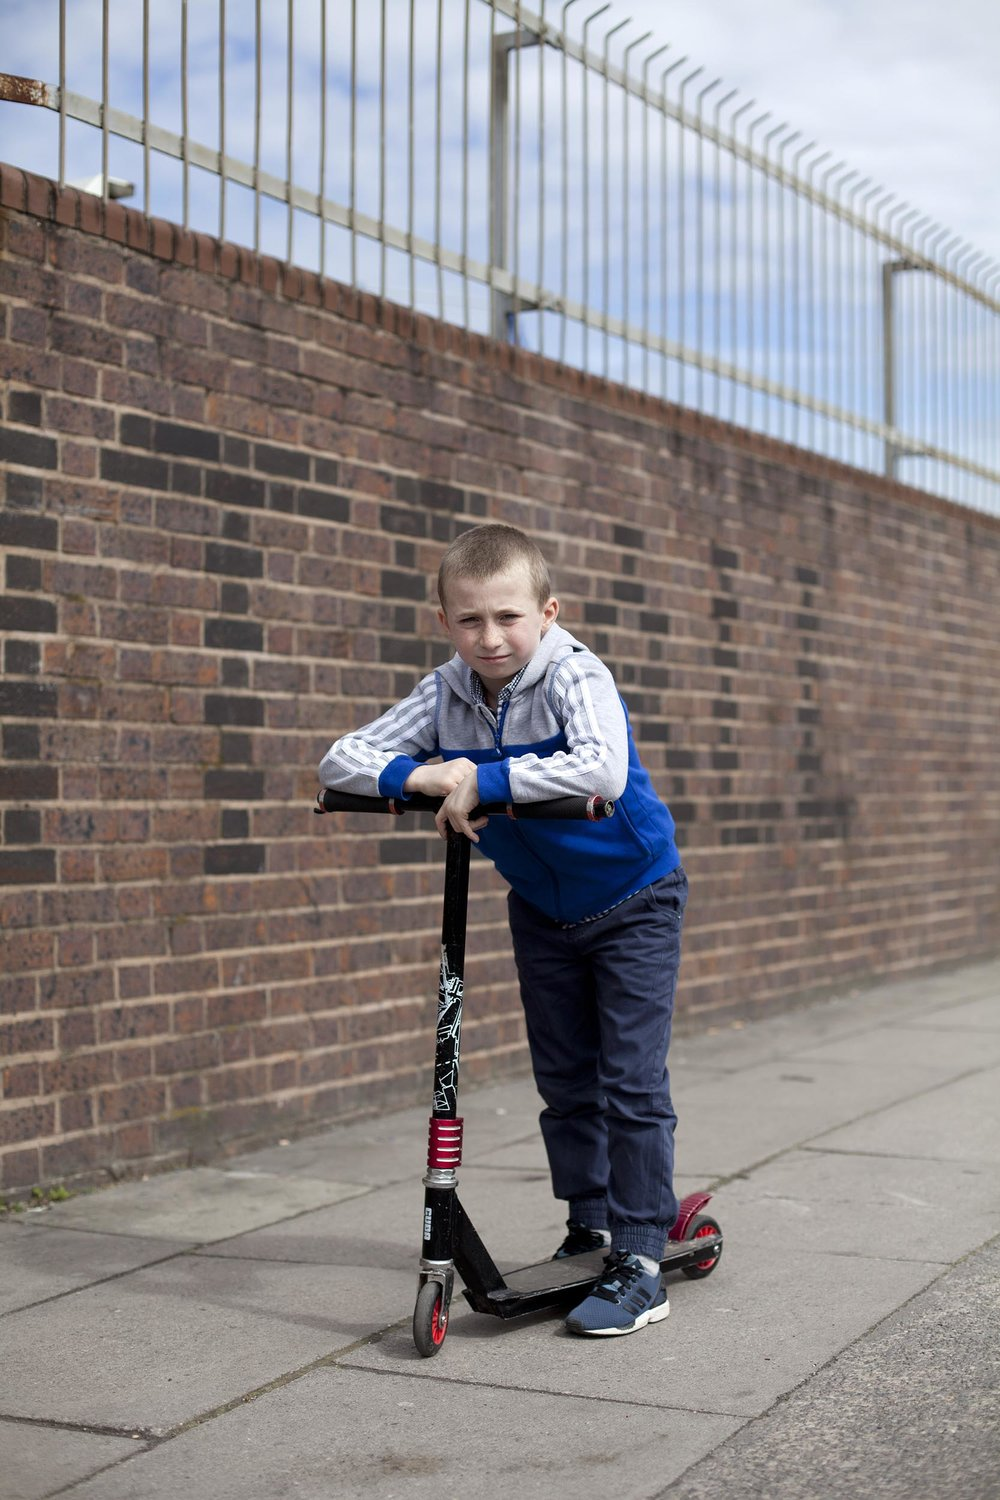 Boy rides scooter outside Everton's ground Goodison Park, Liverpool     Goodison to Anfield with 11 Freunde     A documentary photography collaboration with Ron Ulrich from the German football magazine 11Freunde. Our brief was to walk from Goodison Park to Anfield collecting photographs and stories that told of the area, its people and the changes to both as money flowed into football, but didn't necessarily find its way into Liverpool. In a day of scouse Gonzo, we allowed the story to pull us along, to church, Susan's Salon, several boozers and Stanley Park, the grandiose Victorian centre ground.  Beautifully designed and researched, 11 Freunde has the grass roots of football at its heart so a feature on the people and places surrounding the Liverpool giants seen in it's pages seems apt.   In June, on the days surrounding the Champions League final in Berlin, the spreads were used to advertise the magazine across the city, proudly placing the gritty, boarded-up realities of traditional football into the monied glamour of Europe's most glittering prize.